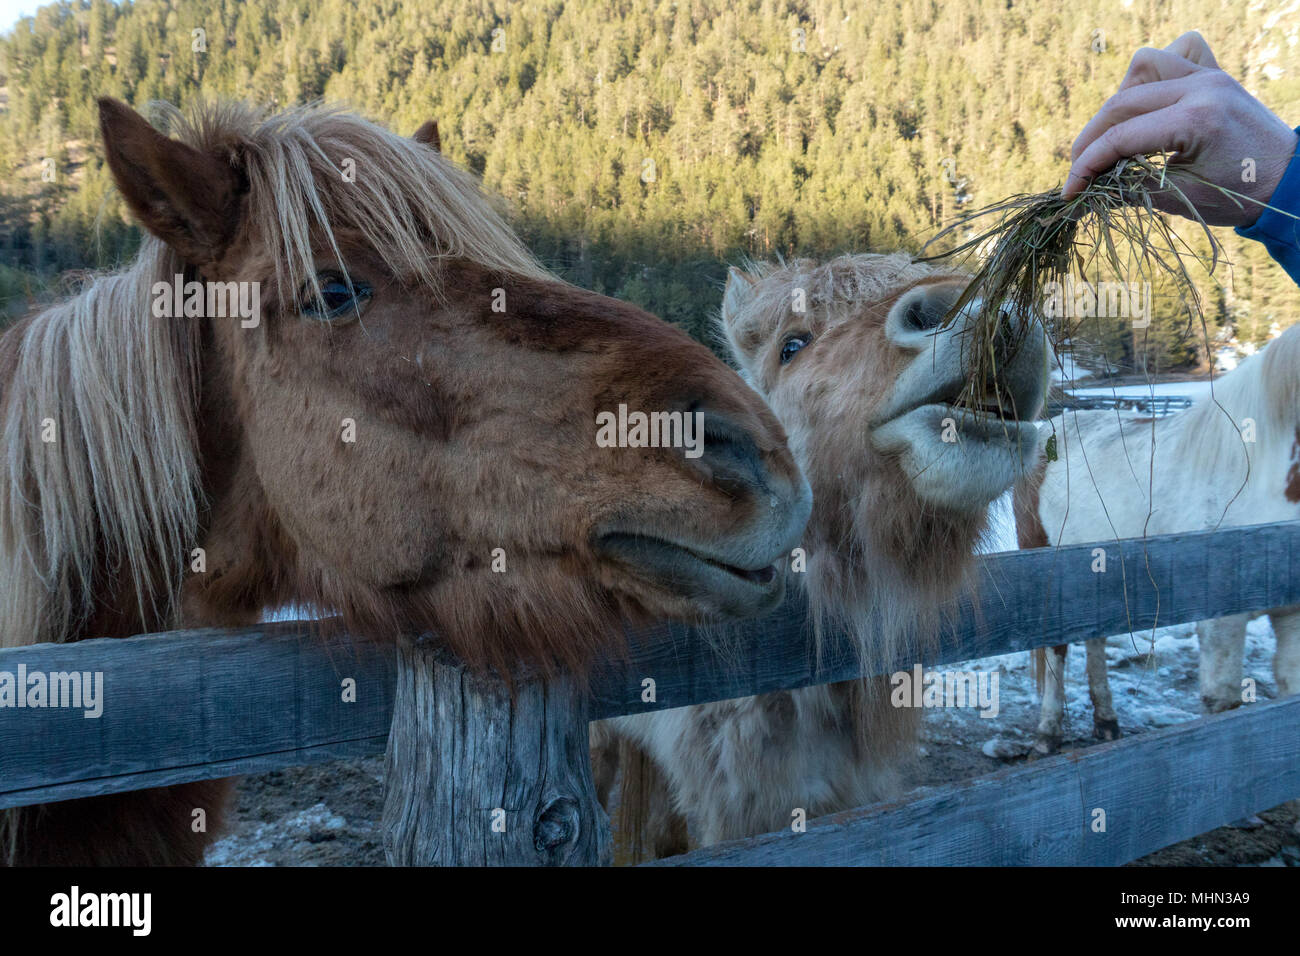 Crazy Funny Horse Eating Grass Portrait Stock Photo Alamy